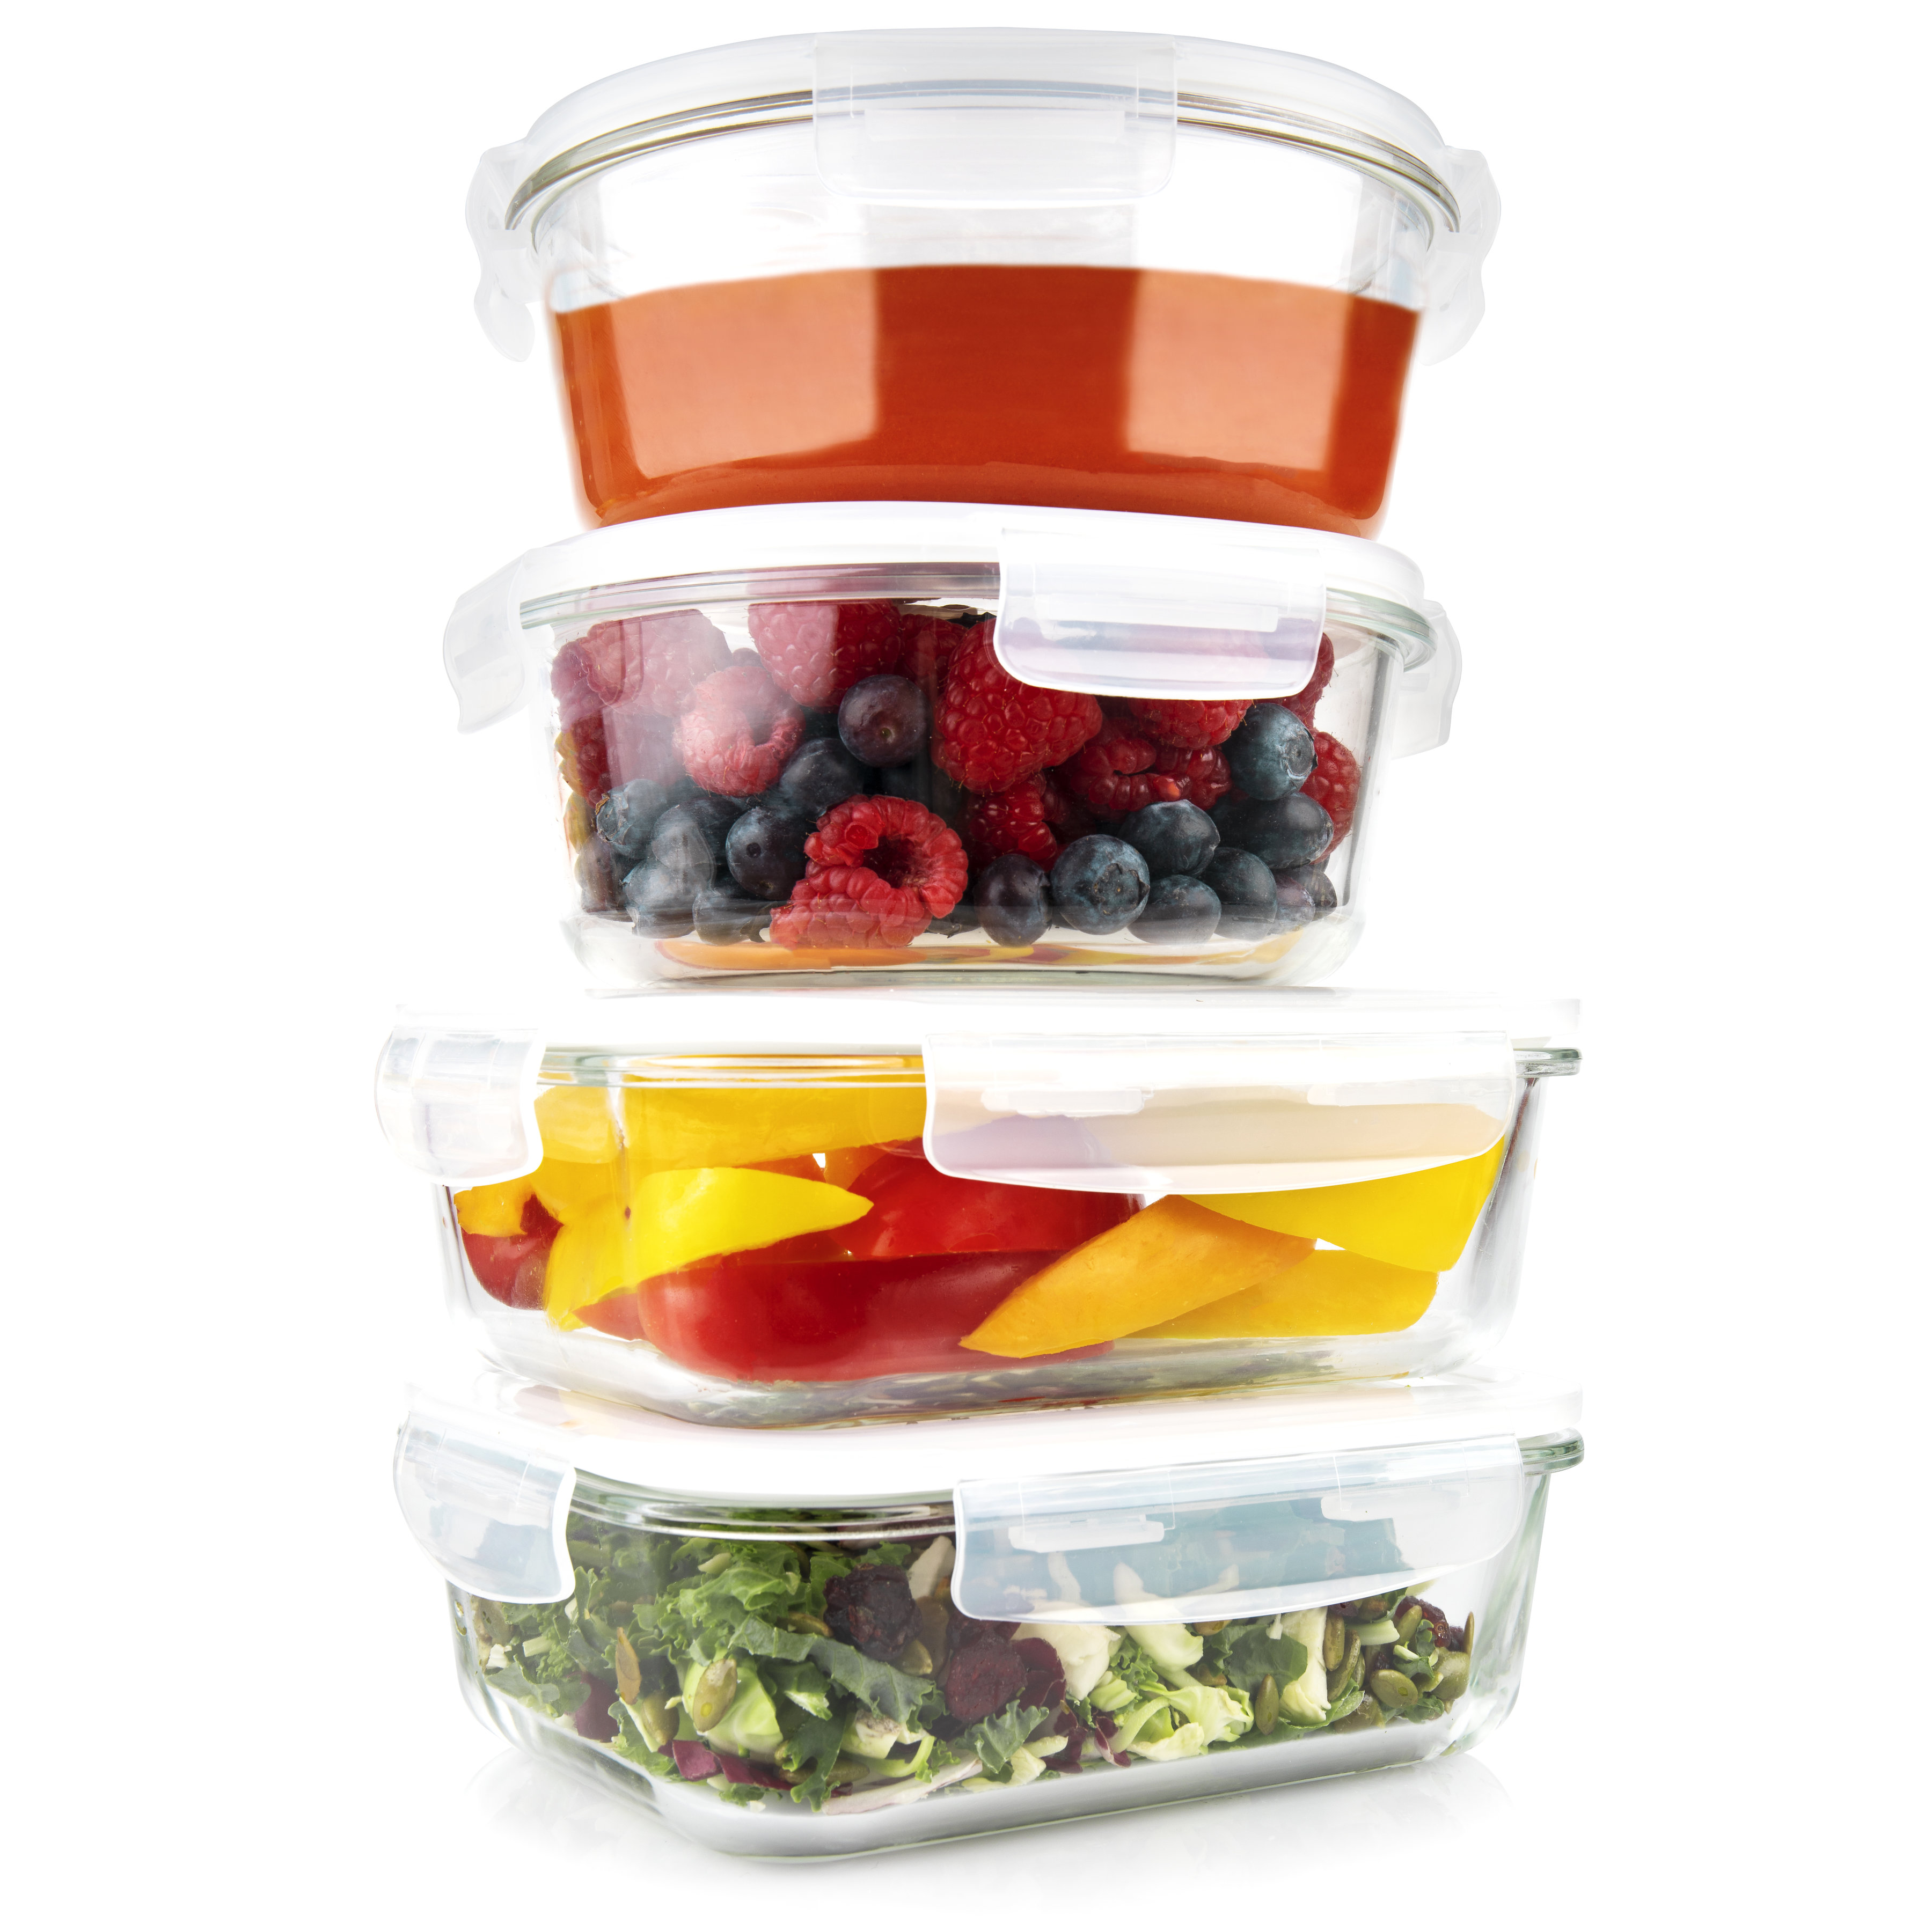 Glass Meal Prep Containers [4, 35 oz] - 2 Round & 2 Rectangle Food Storage Containers, Lunch Containers, Portion Control, Leakproof, BPA Free, Microwave, Oven, and Dishwasher Safe (lids off)